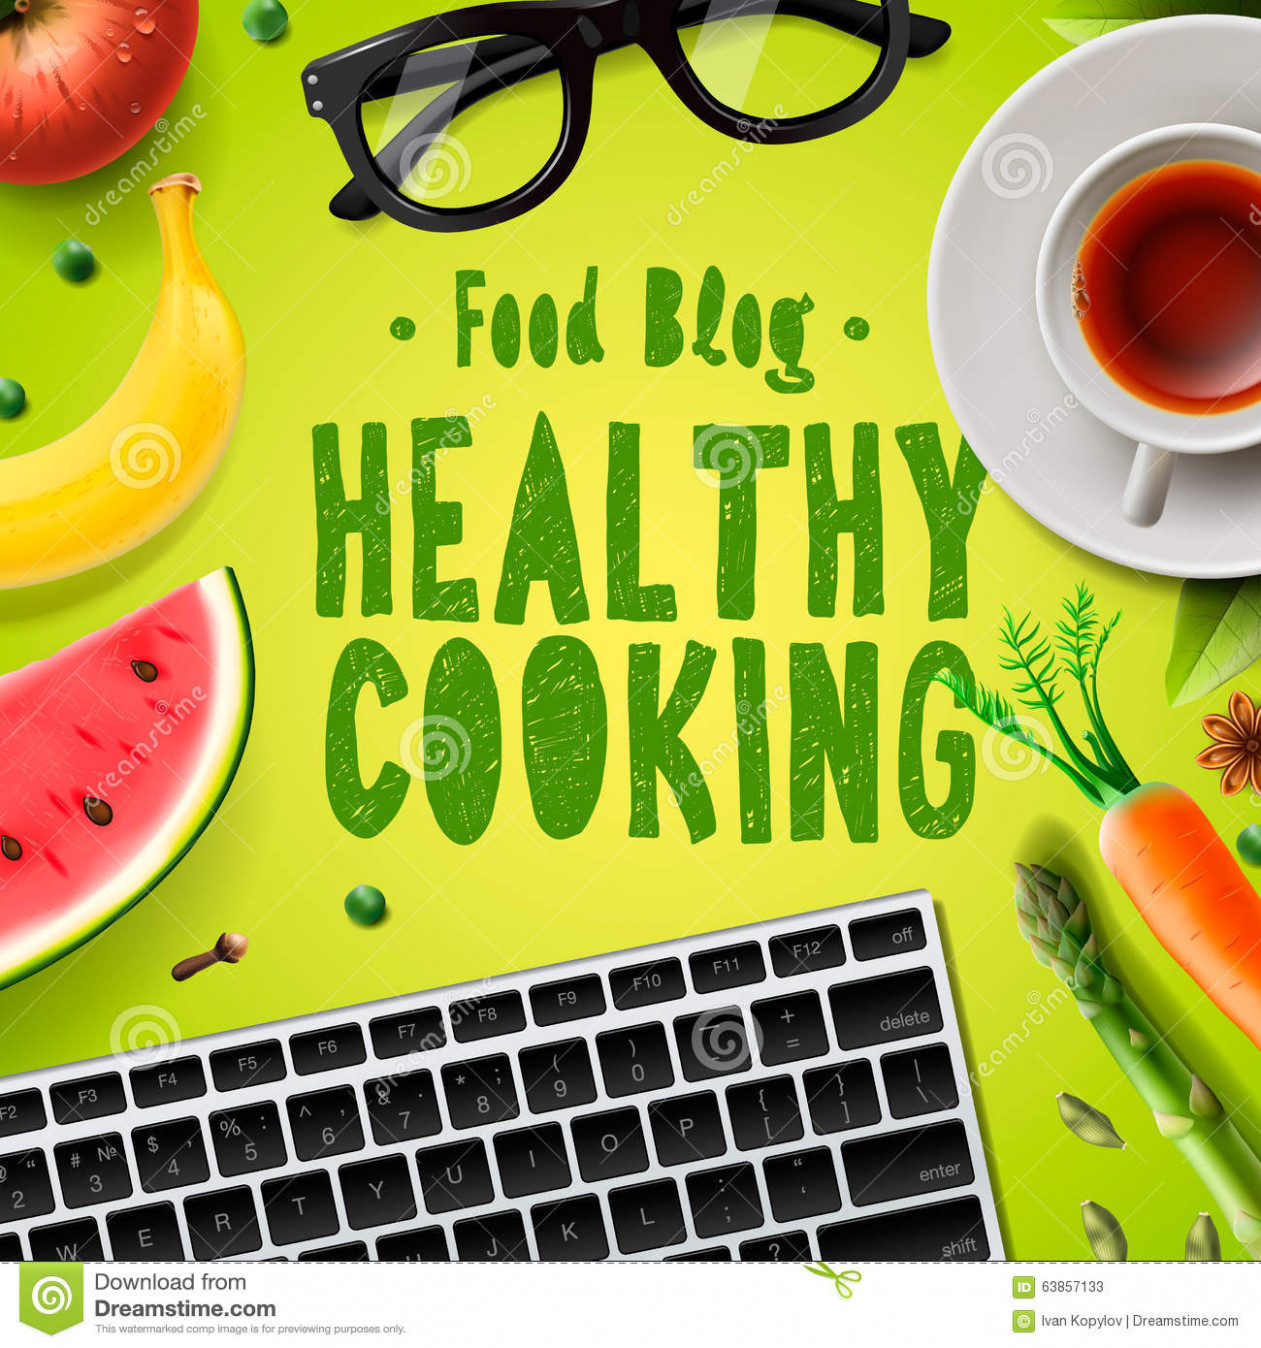 Food Blog, Healthy Cooking Recipes Online Stock ...